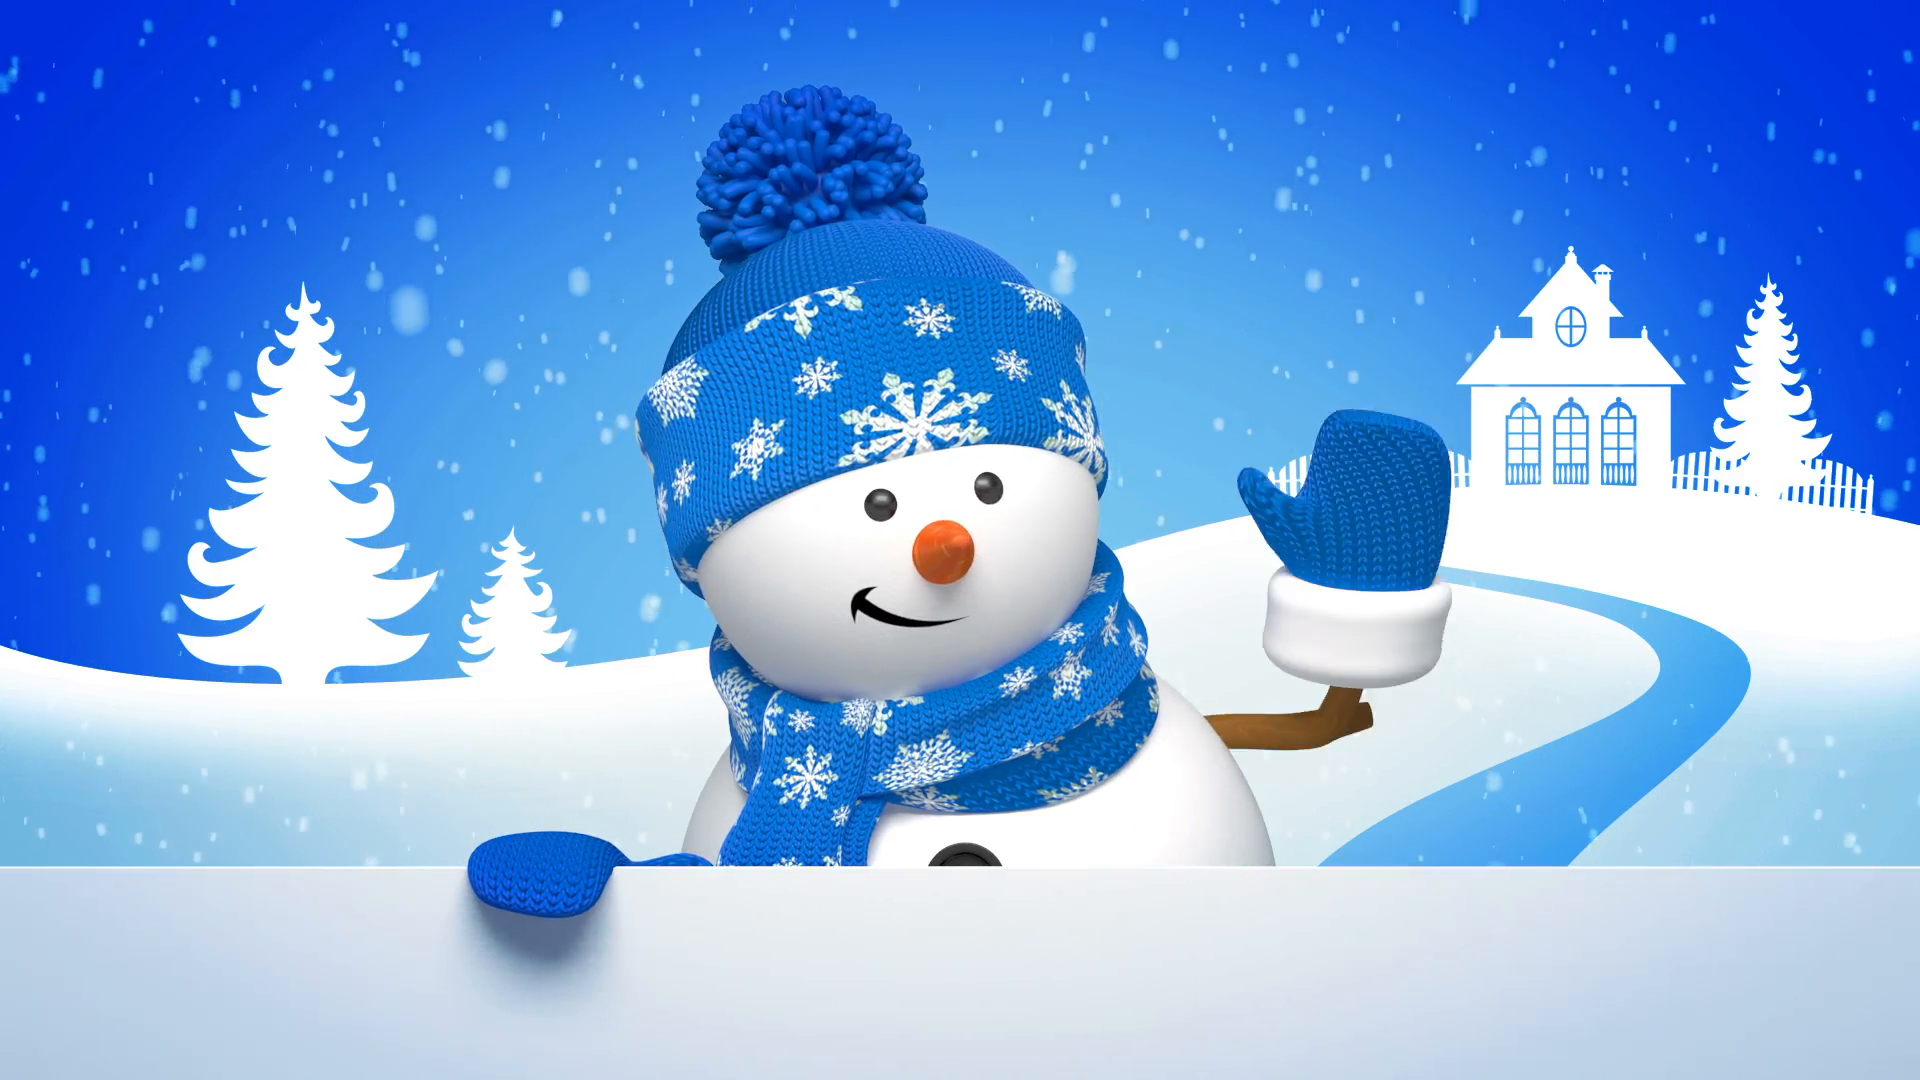 Real Christmas Snowman Pictures Wallpaper Hd Resolution On